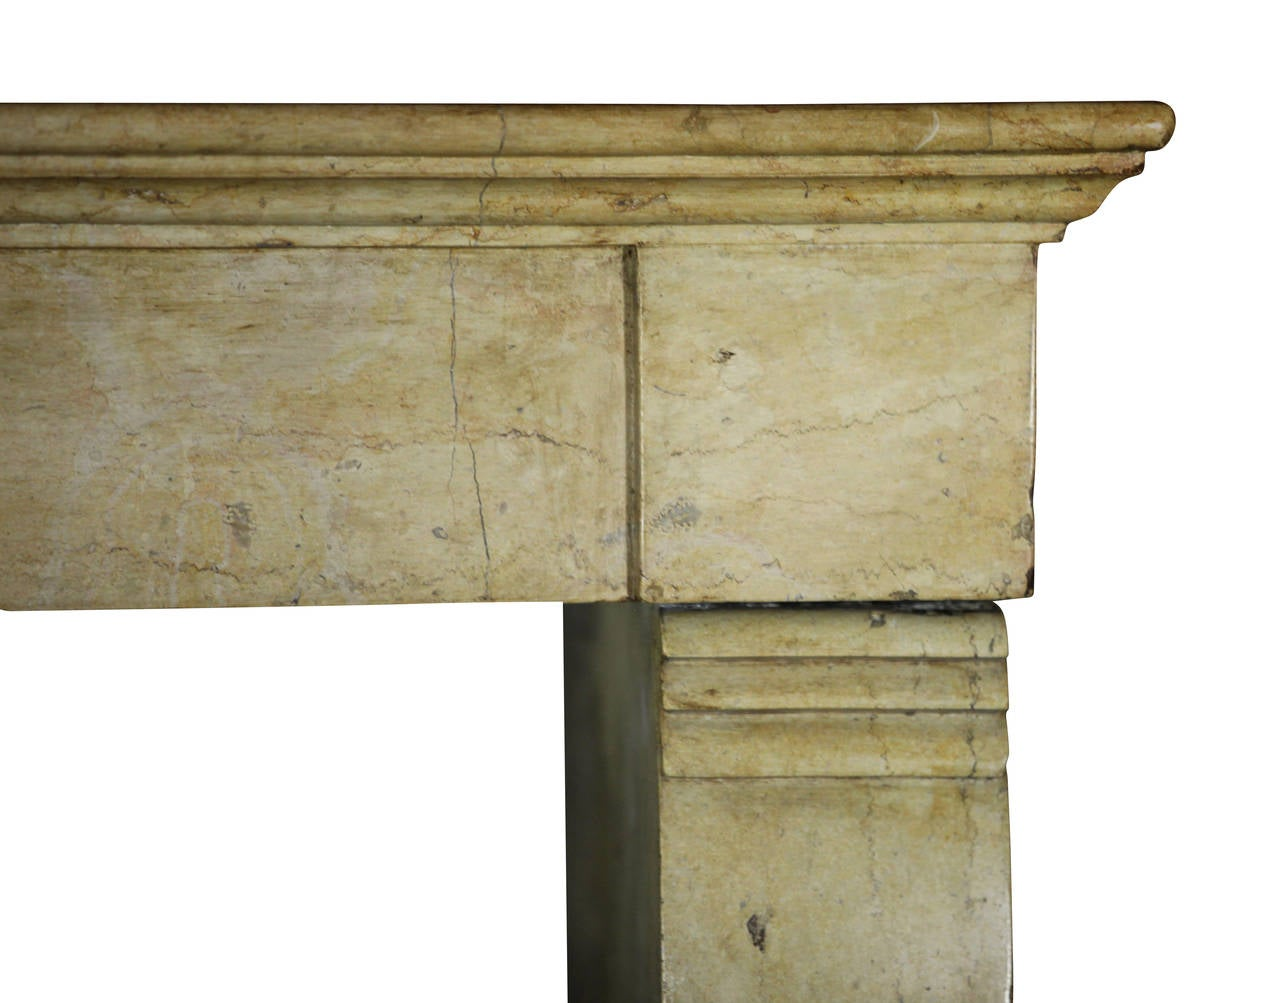 18th century antique fireplace mantel with an envelope